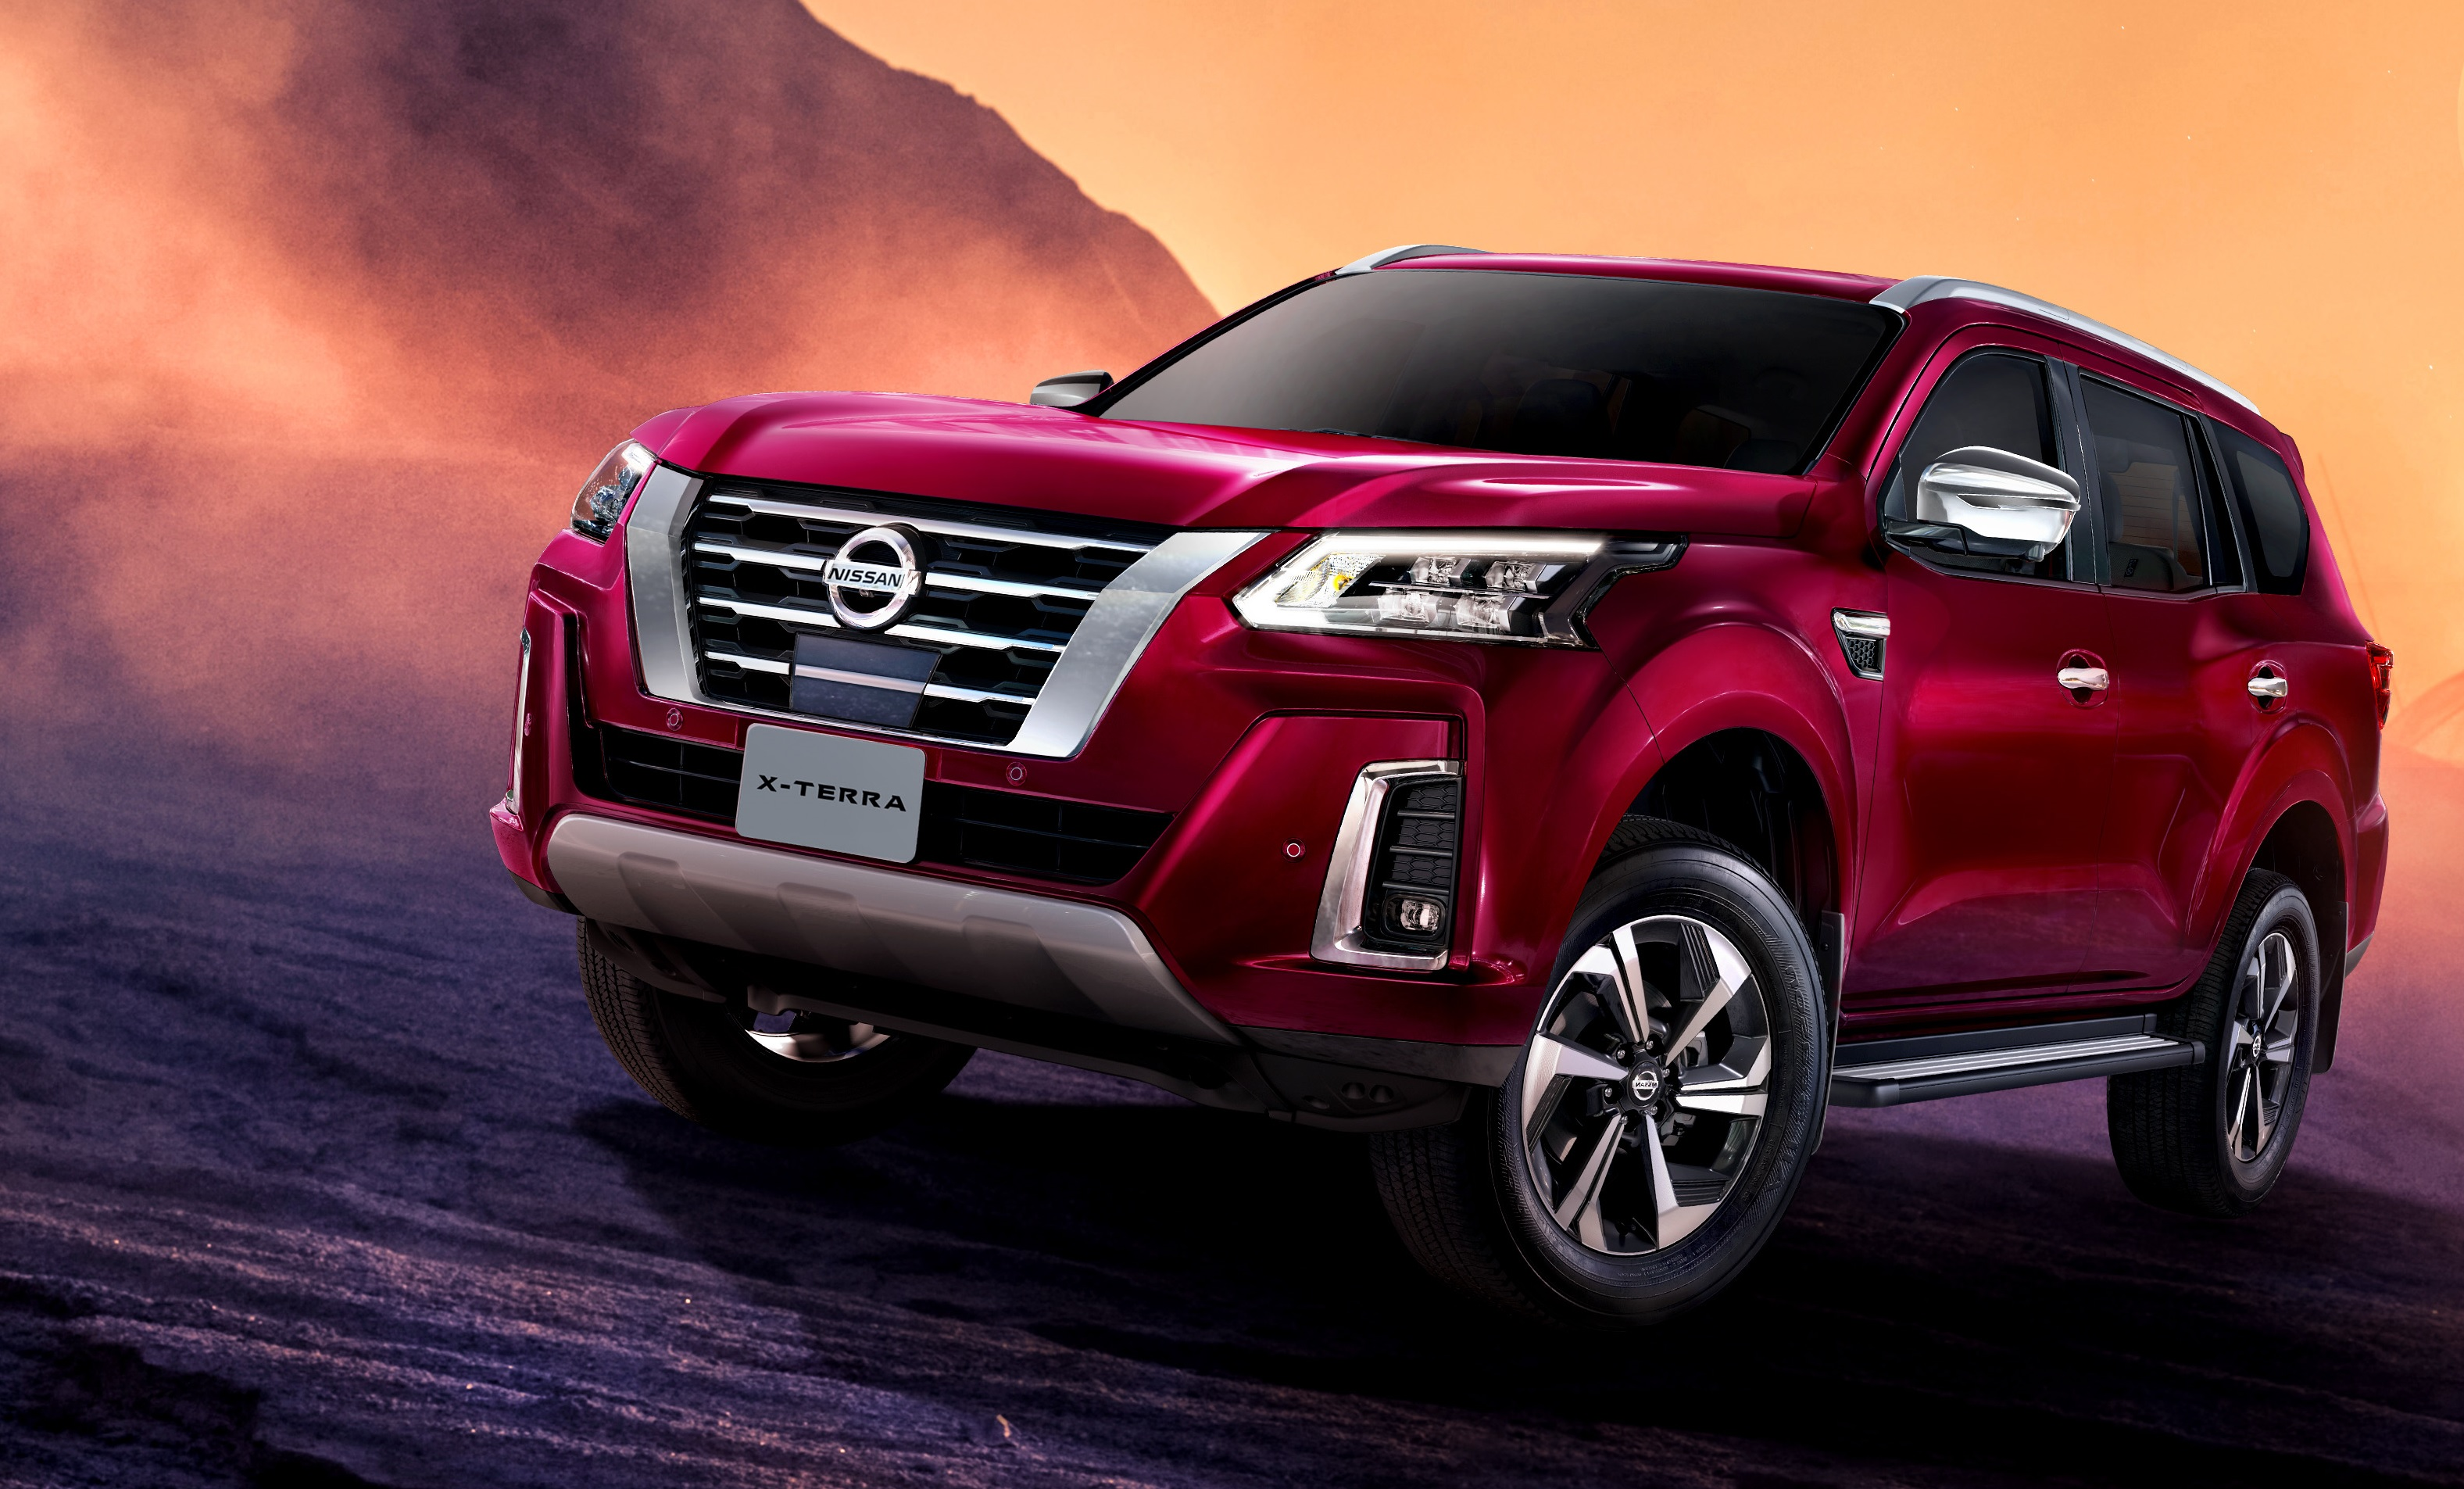 Nissan Launches 5 X Terra in the Middle East  Egypt - YallaMotor